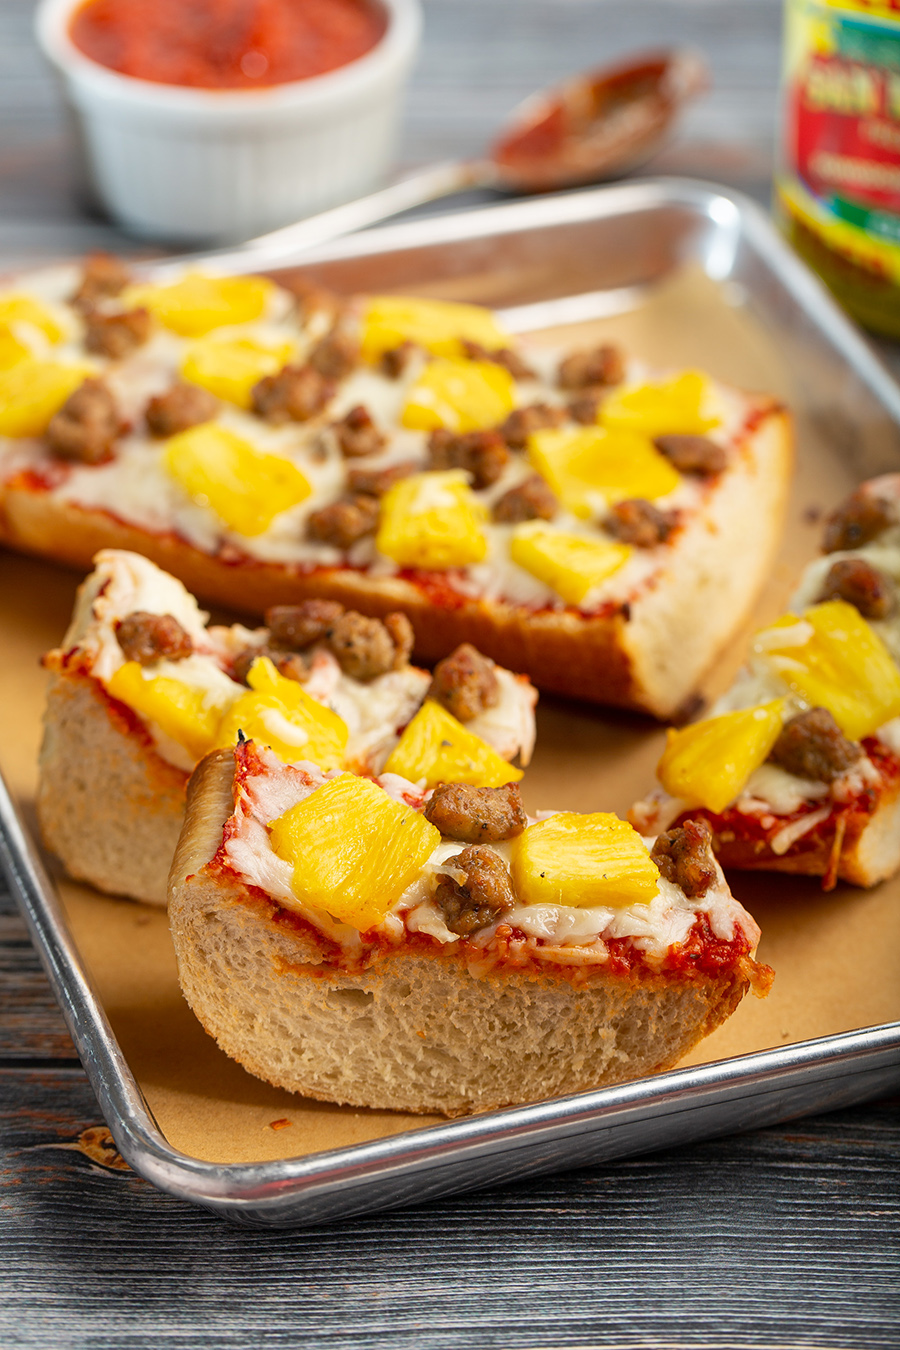 Sausage and Pineapple French Bread Pizza | Instead of making pizza dough, French bread can also be great for pizza. This version hits all the right notes, savory, sweet & tangy. #frenchbreadpizza #pizza #baked #pizzasauce #cheese #pineapple #sausage #dinner #dinnerrecipe #easyrecipe #weeknightrecipe | The Missing Lokness